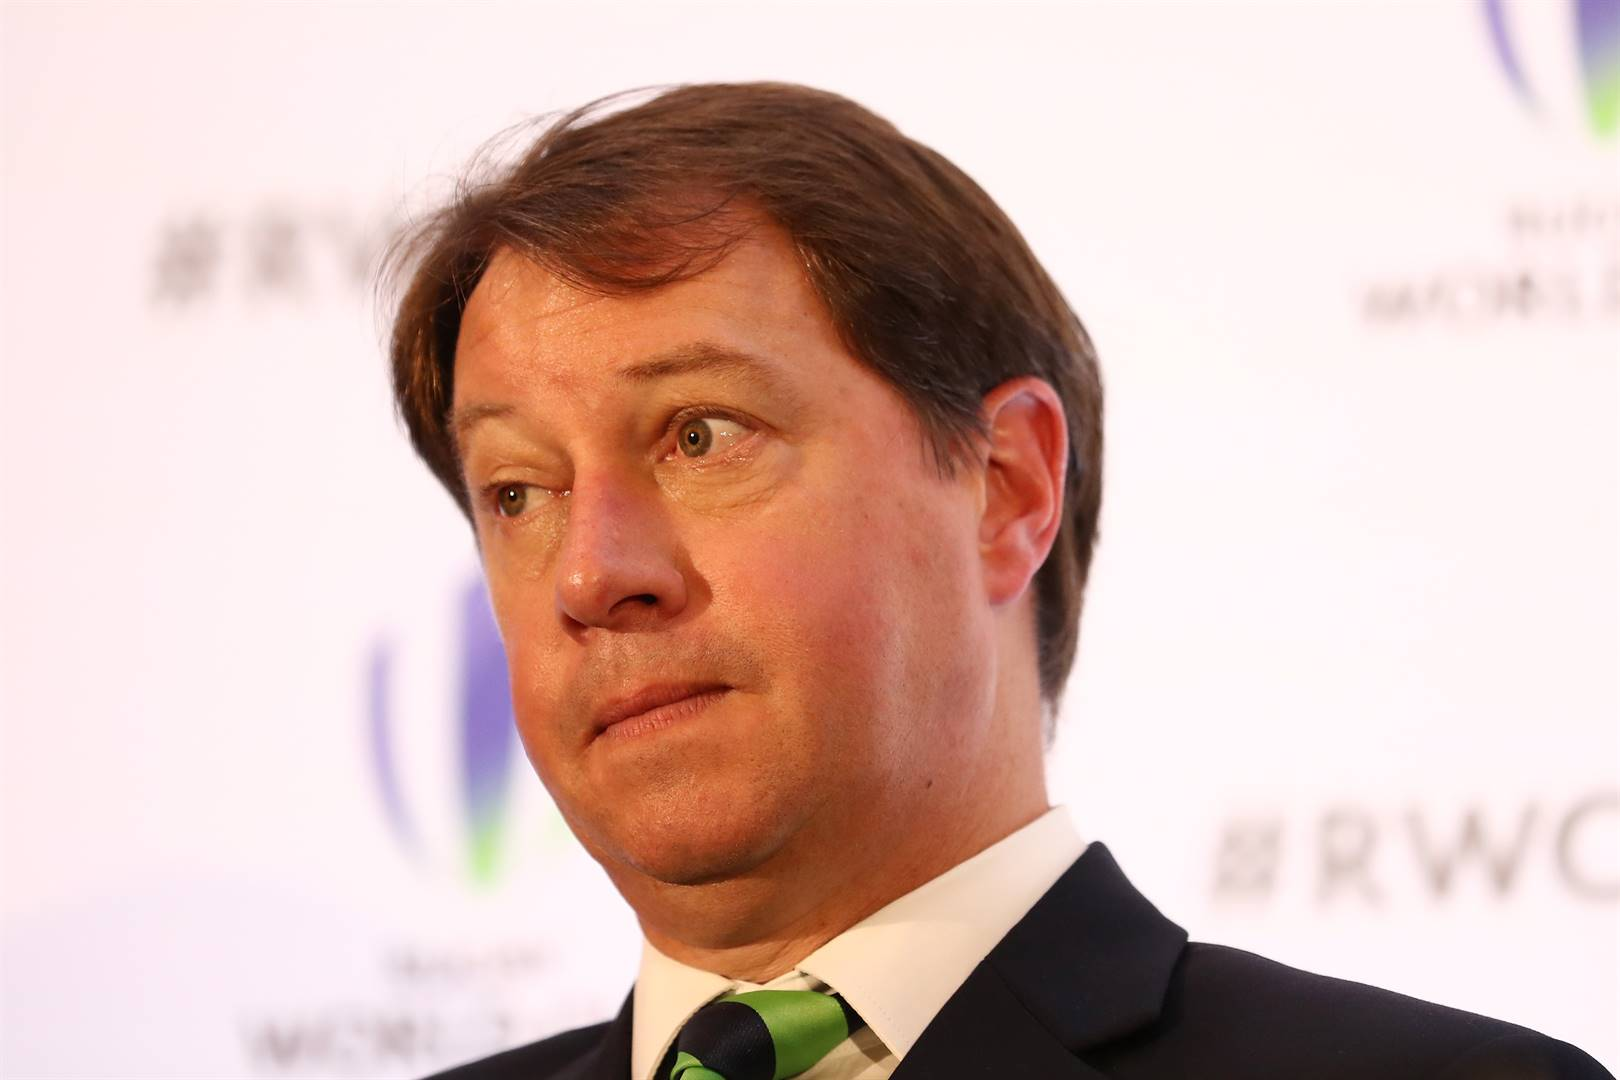 SA Rugby chief executive Jurie Roux has commended unions for playing their part in fighting Covid-19.